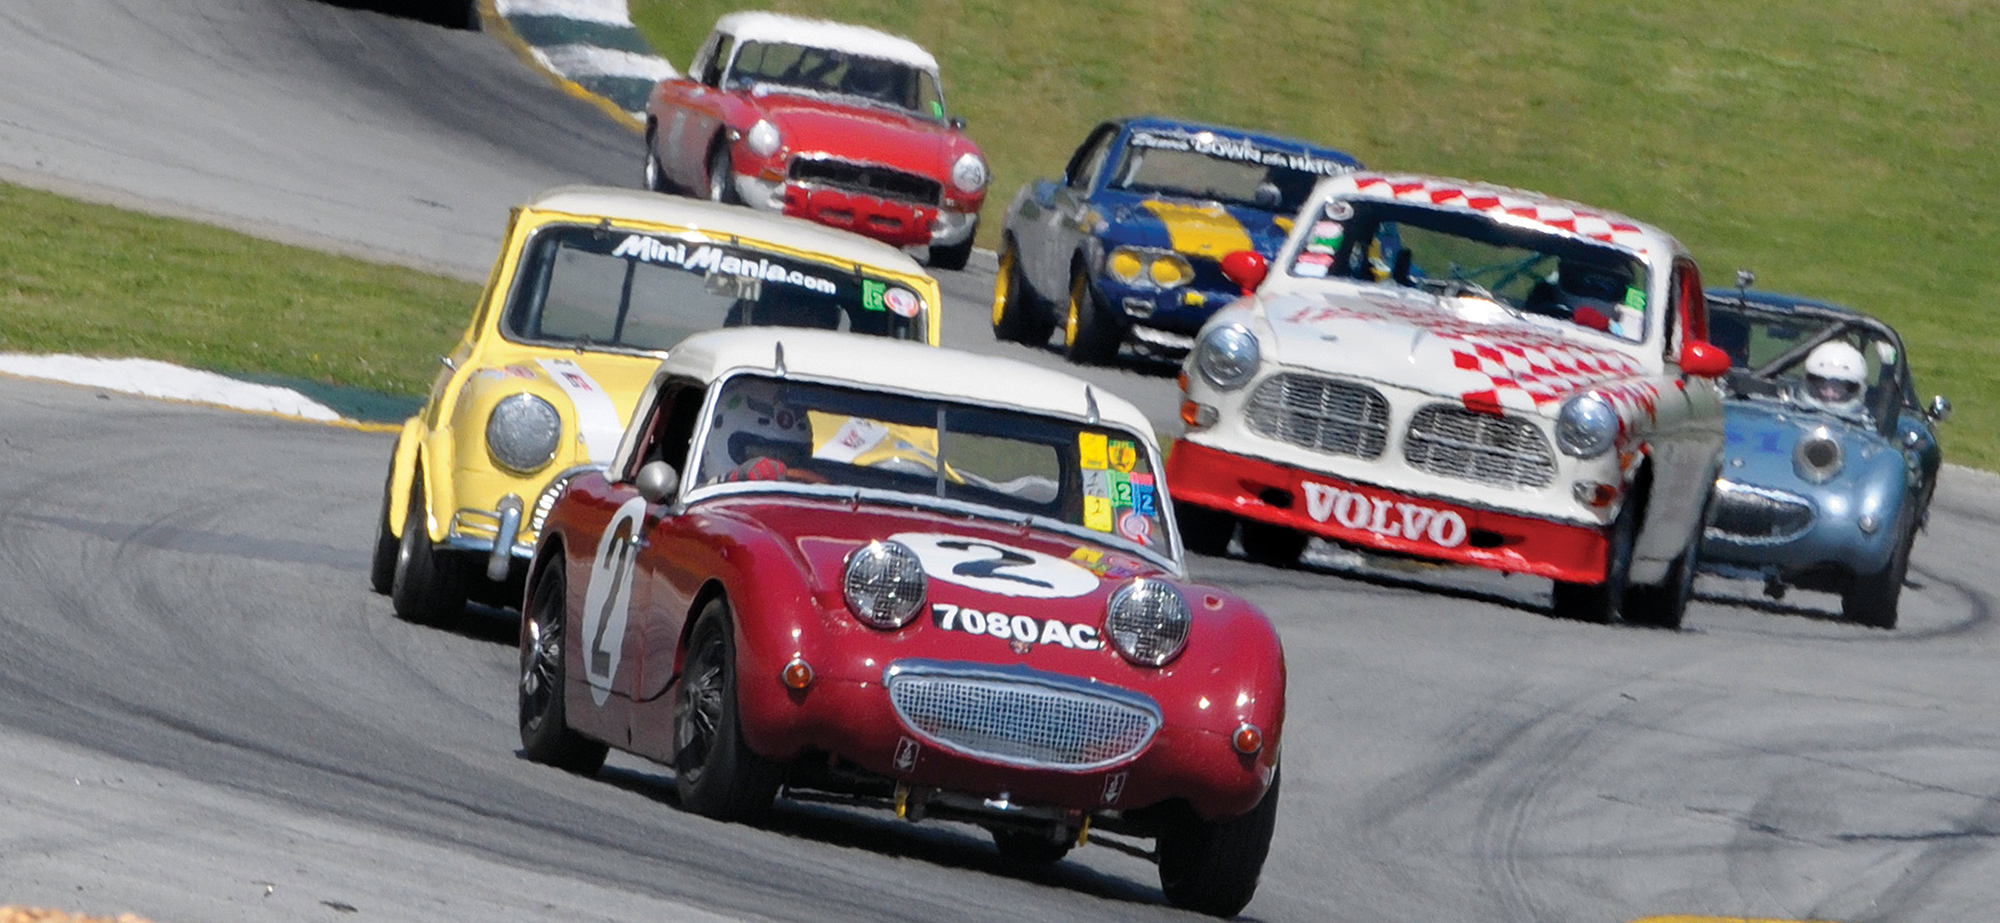 Your First Race Car: 12 Excellent Vintage Vehicles for Beginners